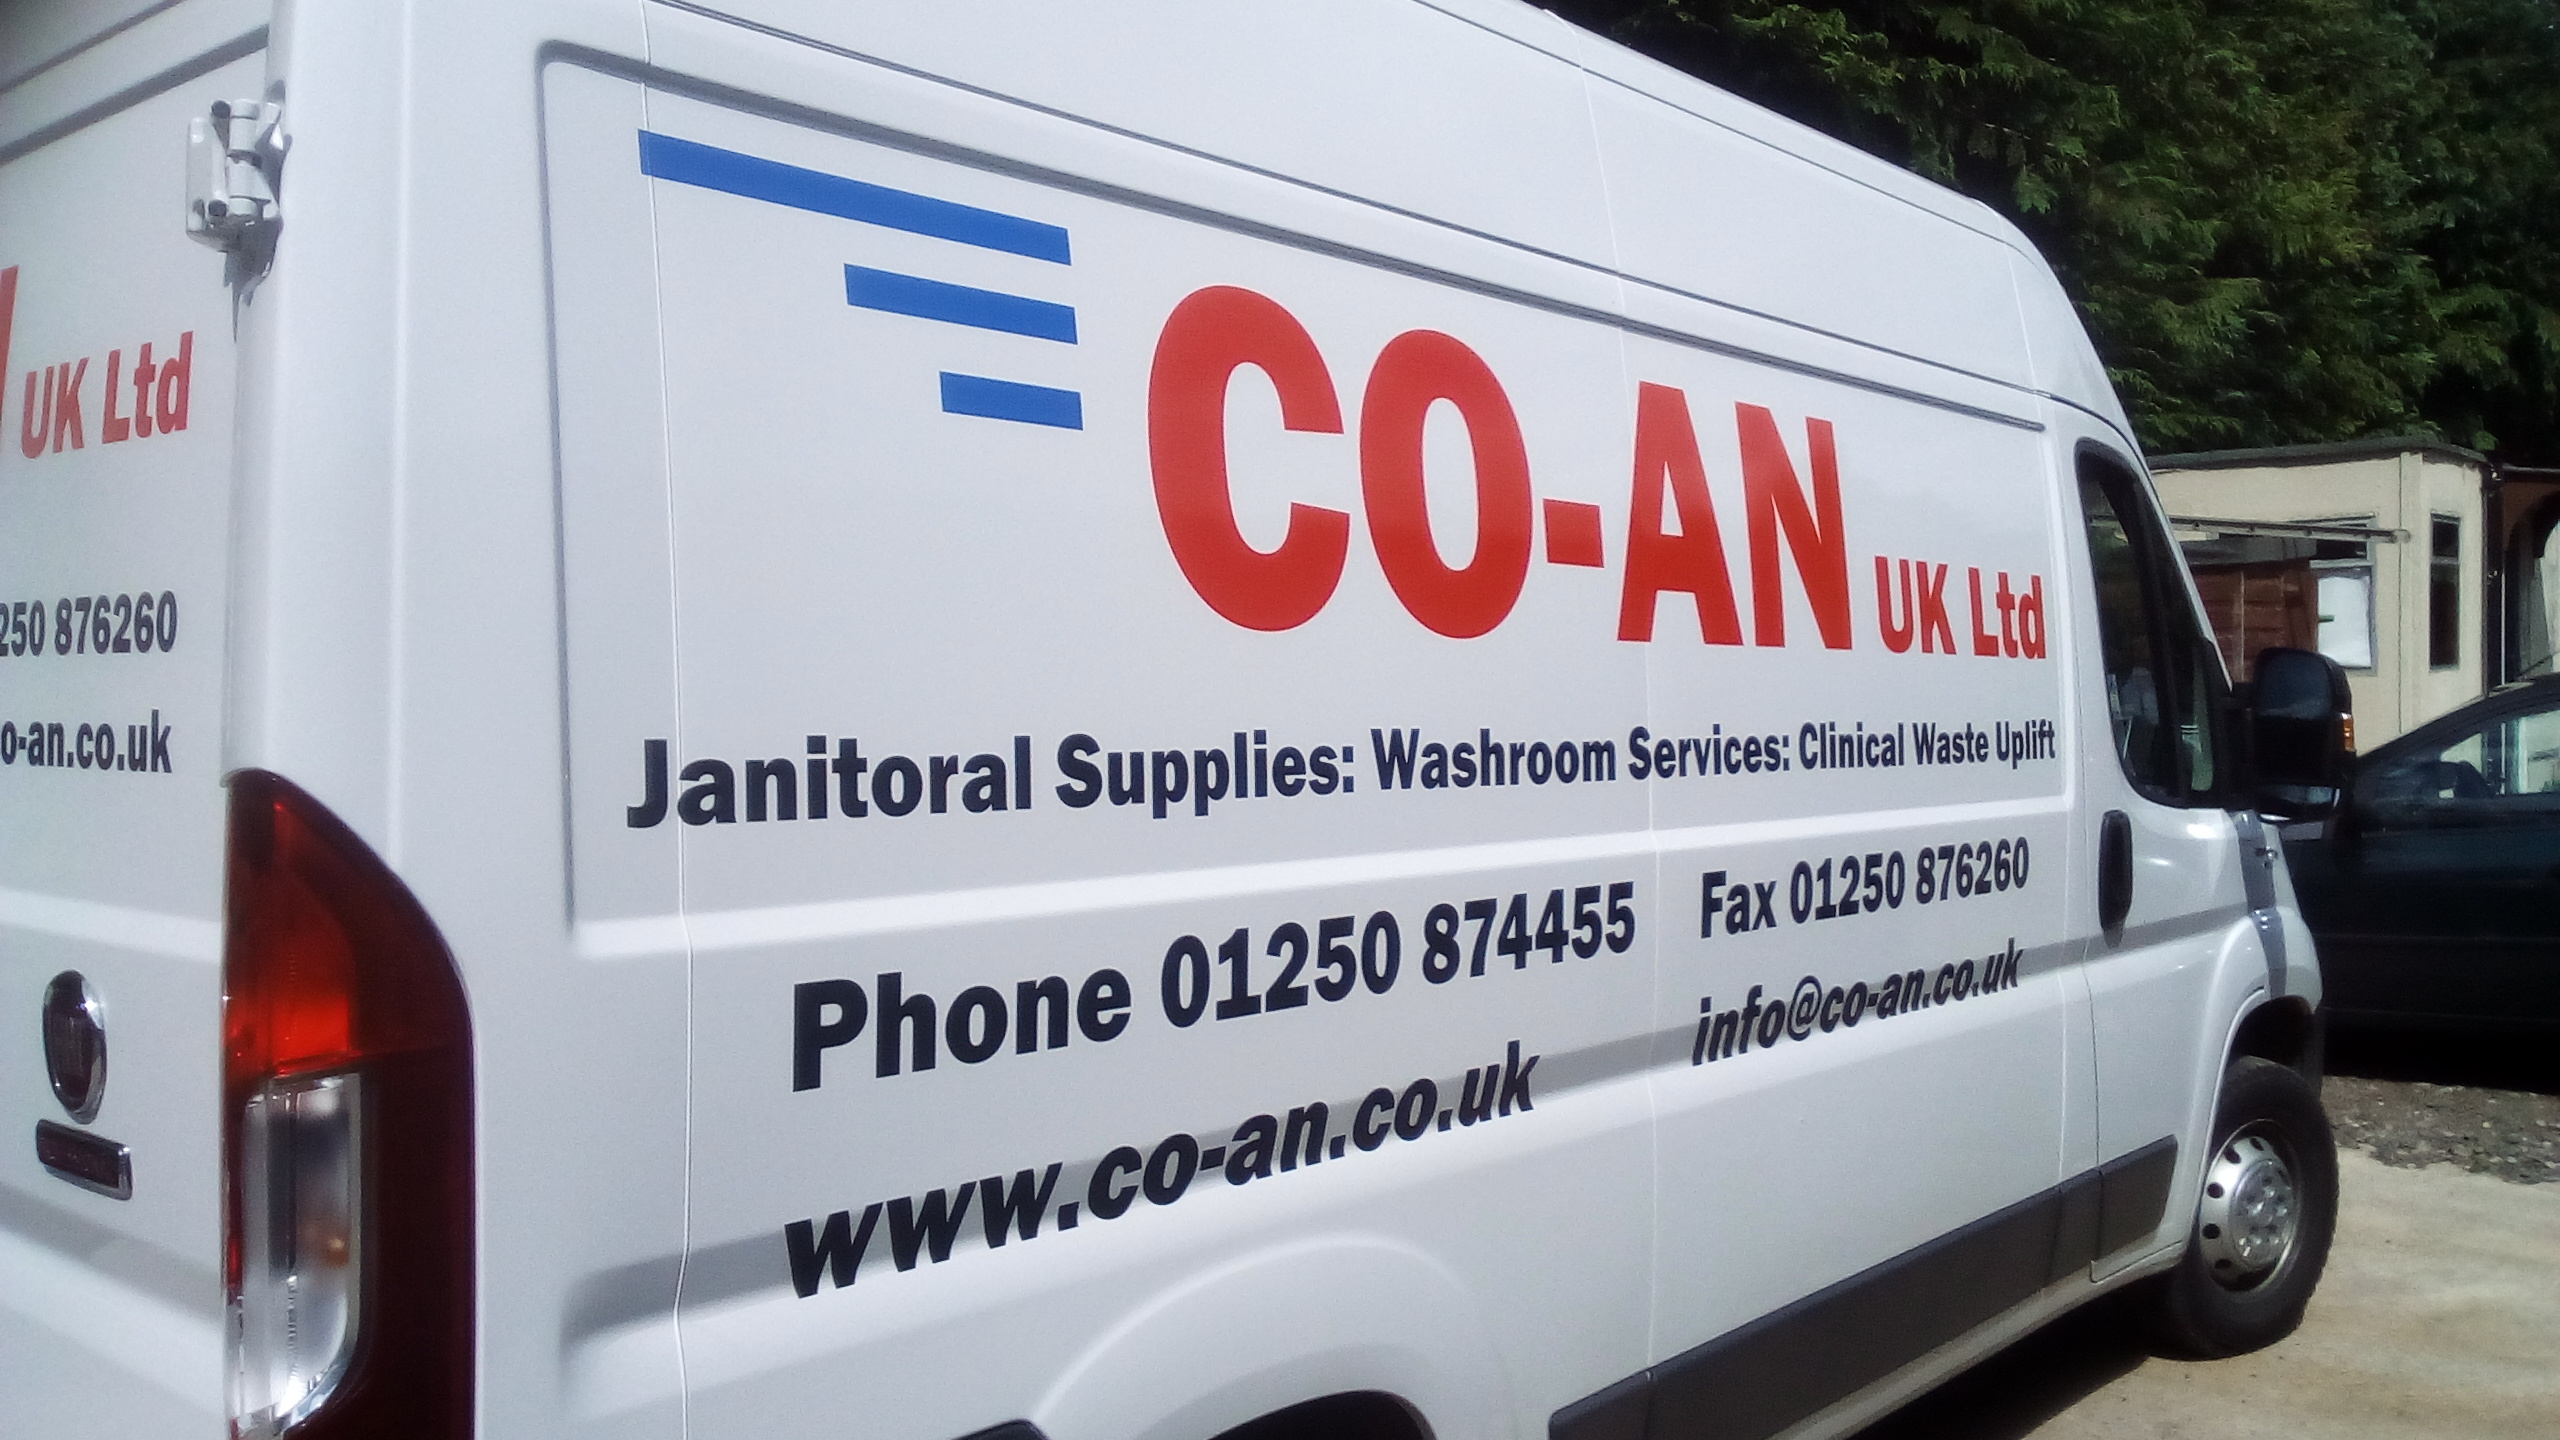 co-an side view of van